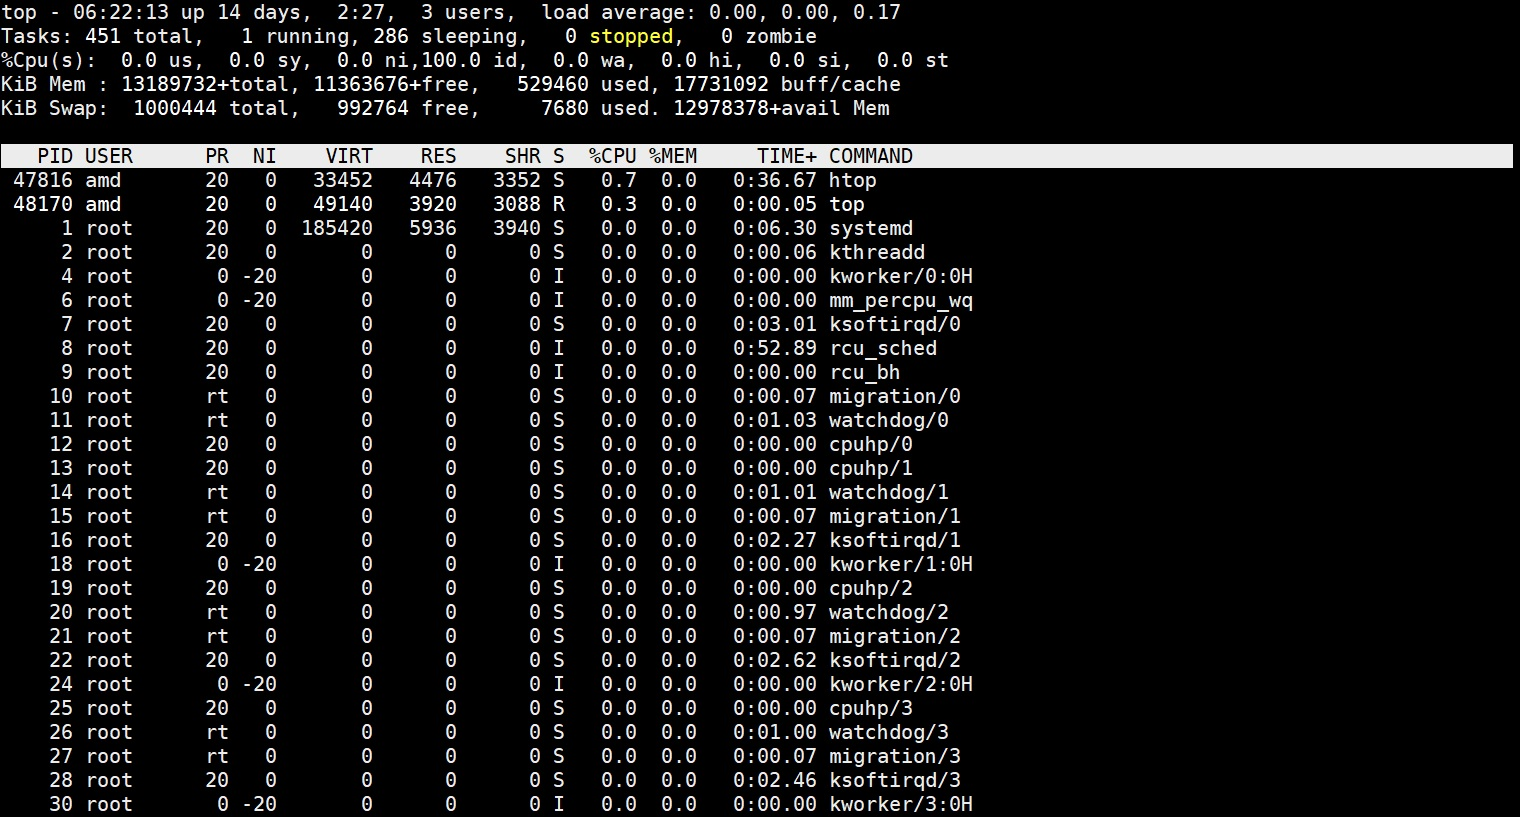 top command output